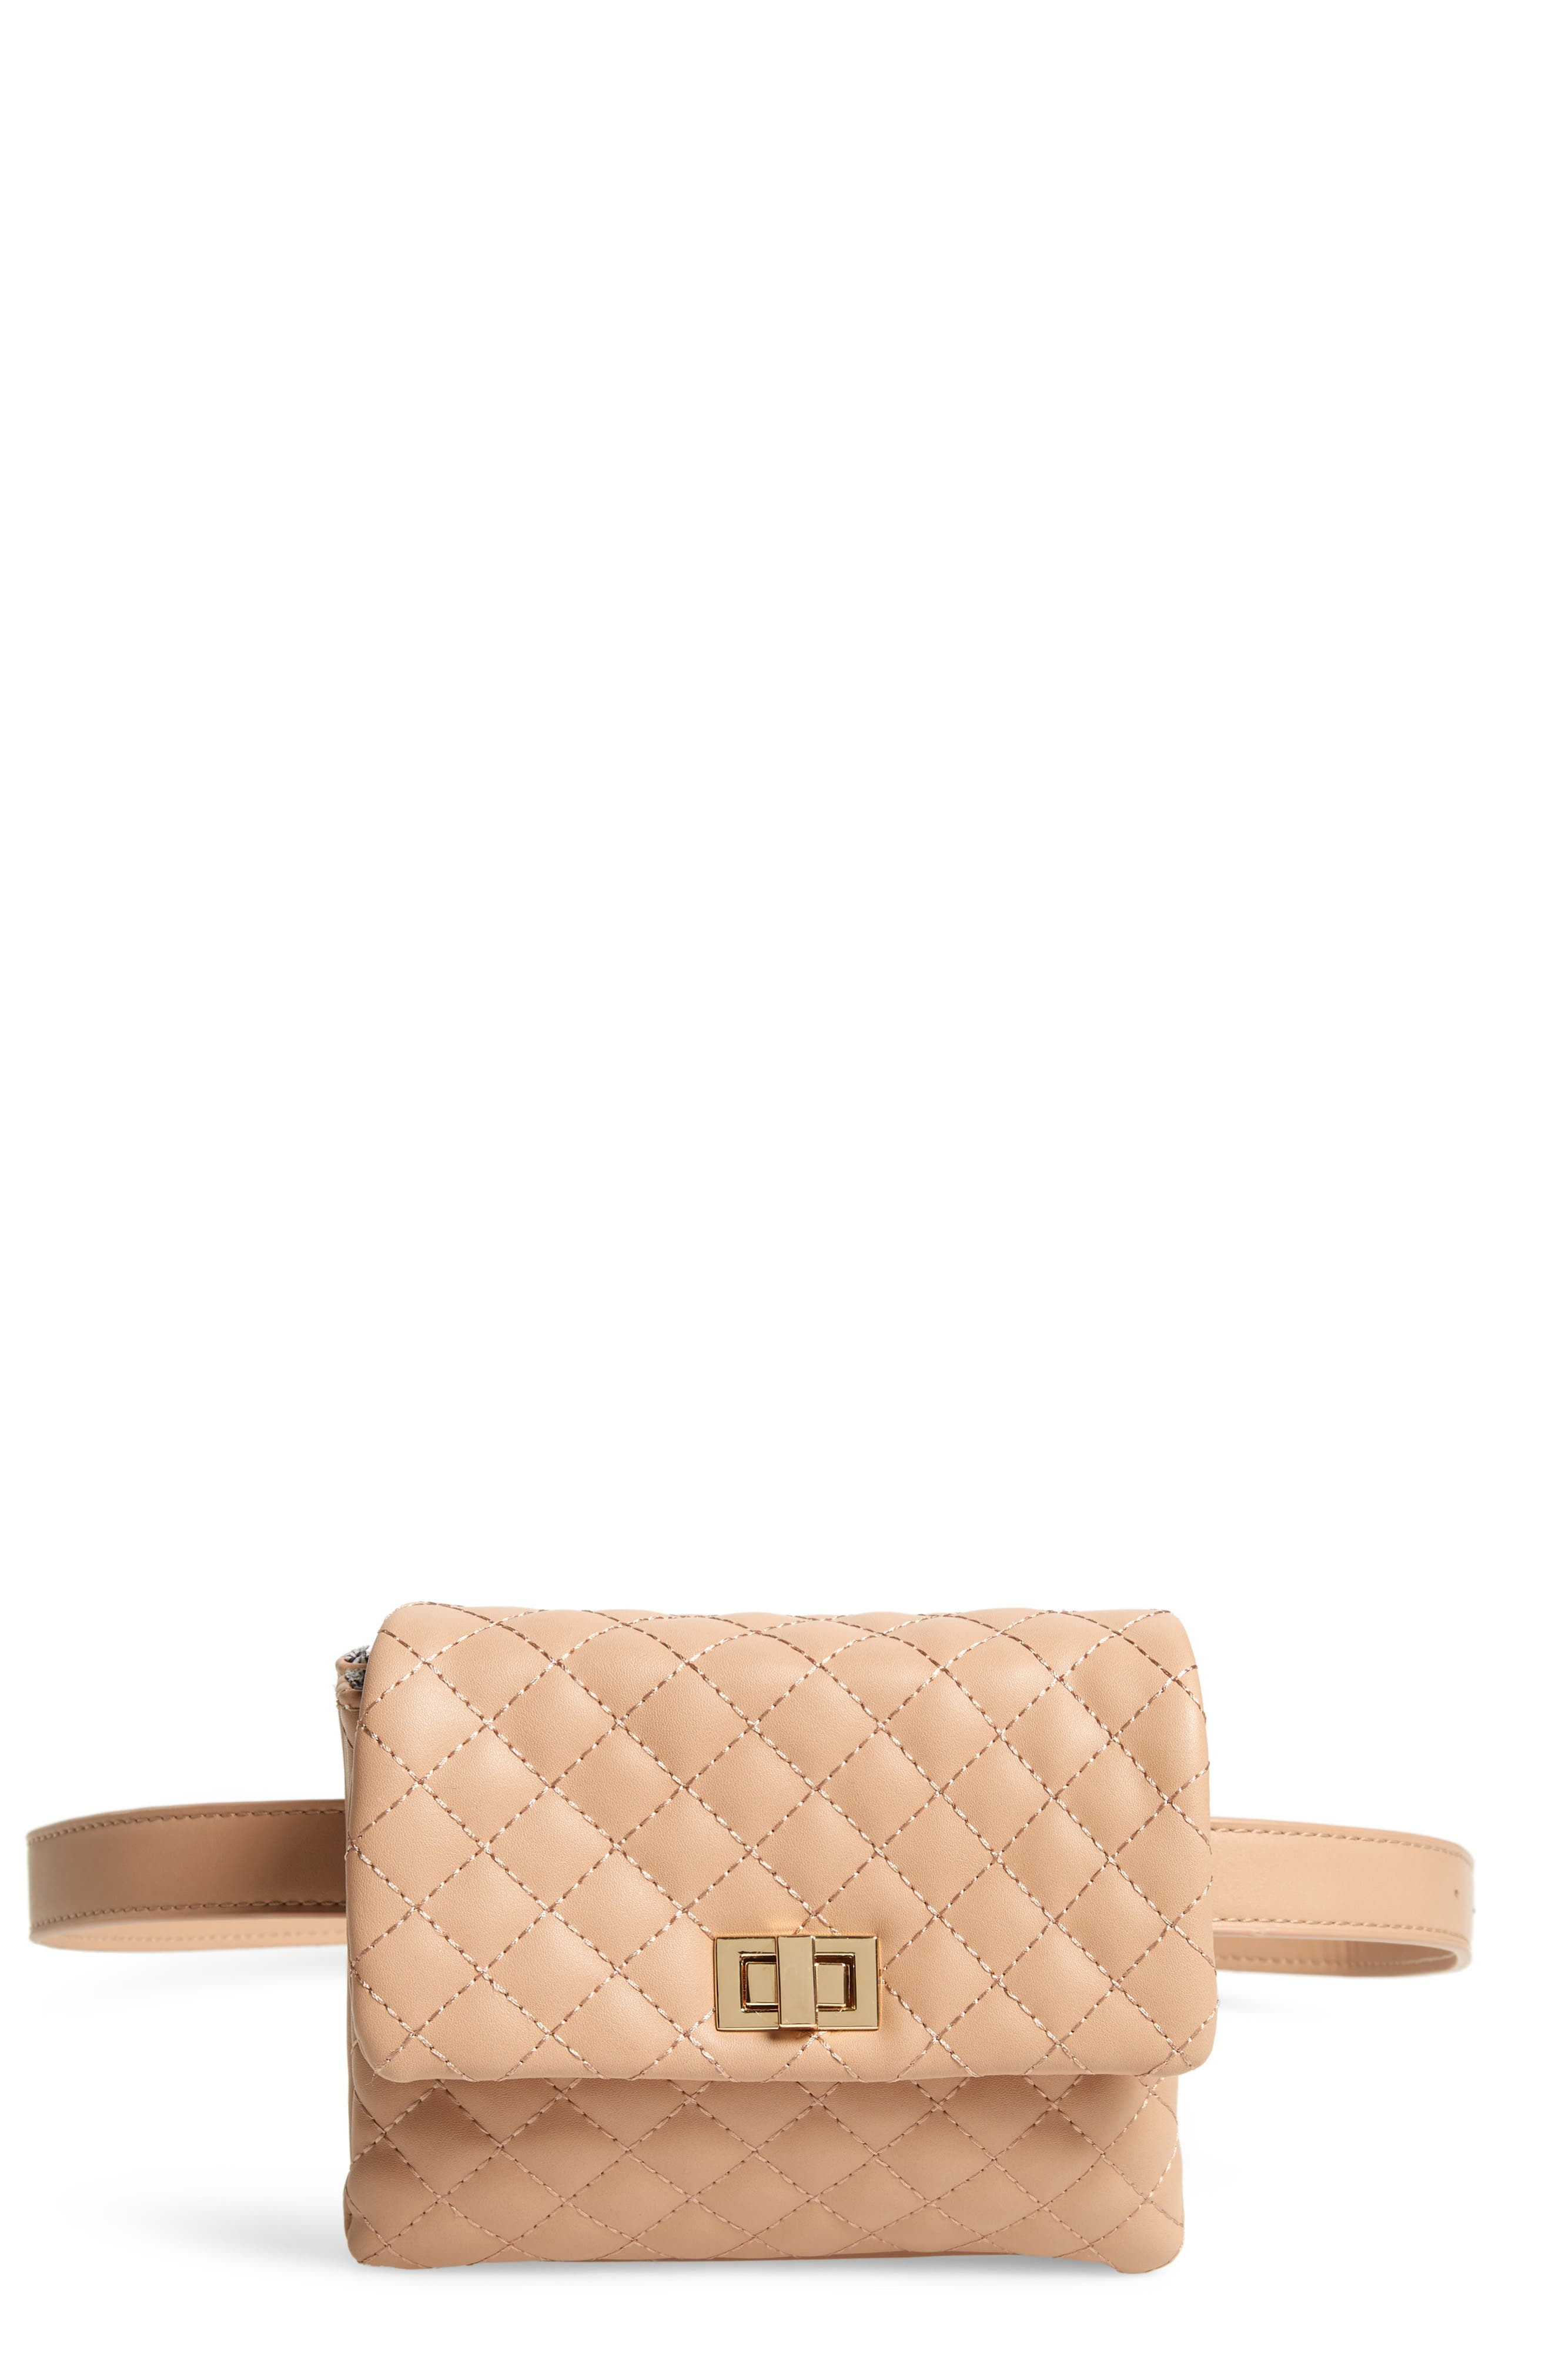 MALI + LILI Quilted Vegan Leather Belt Bag, Main, color, CAMEL